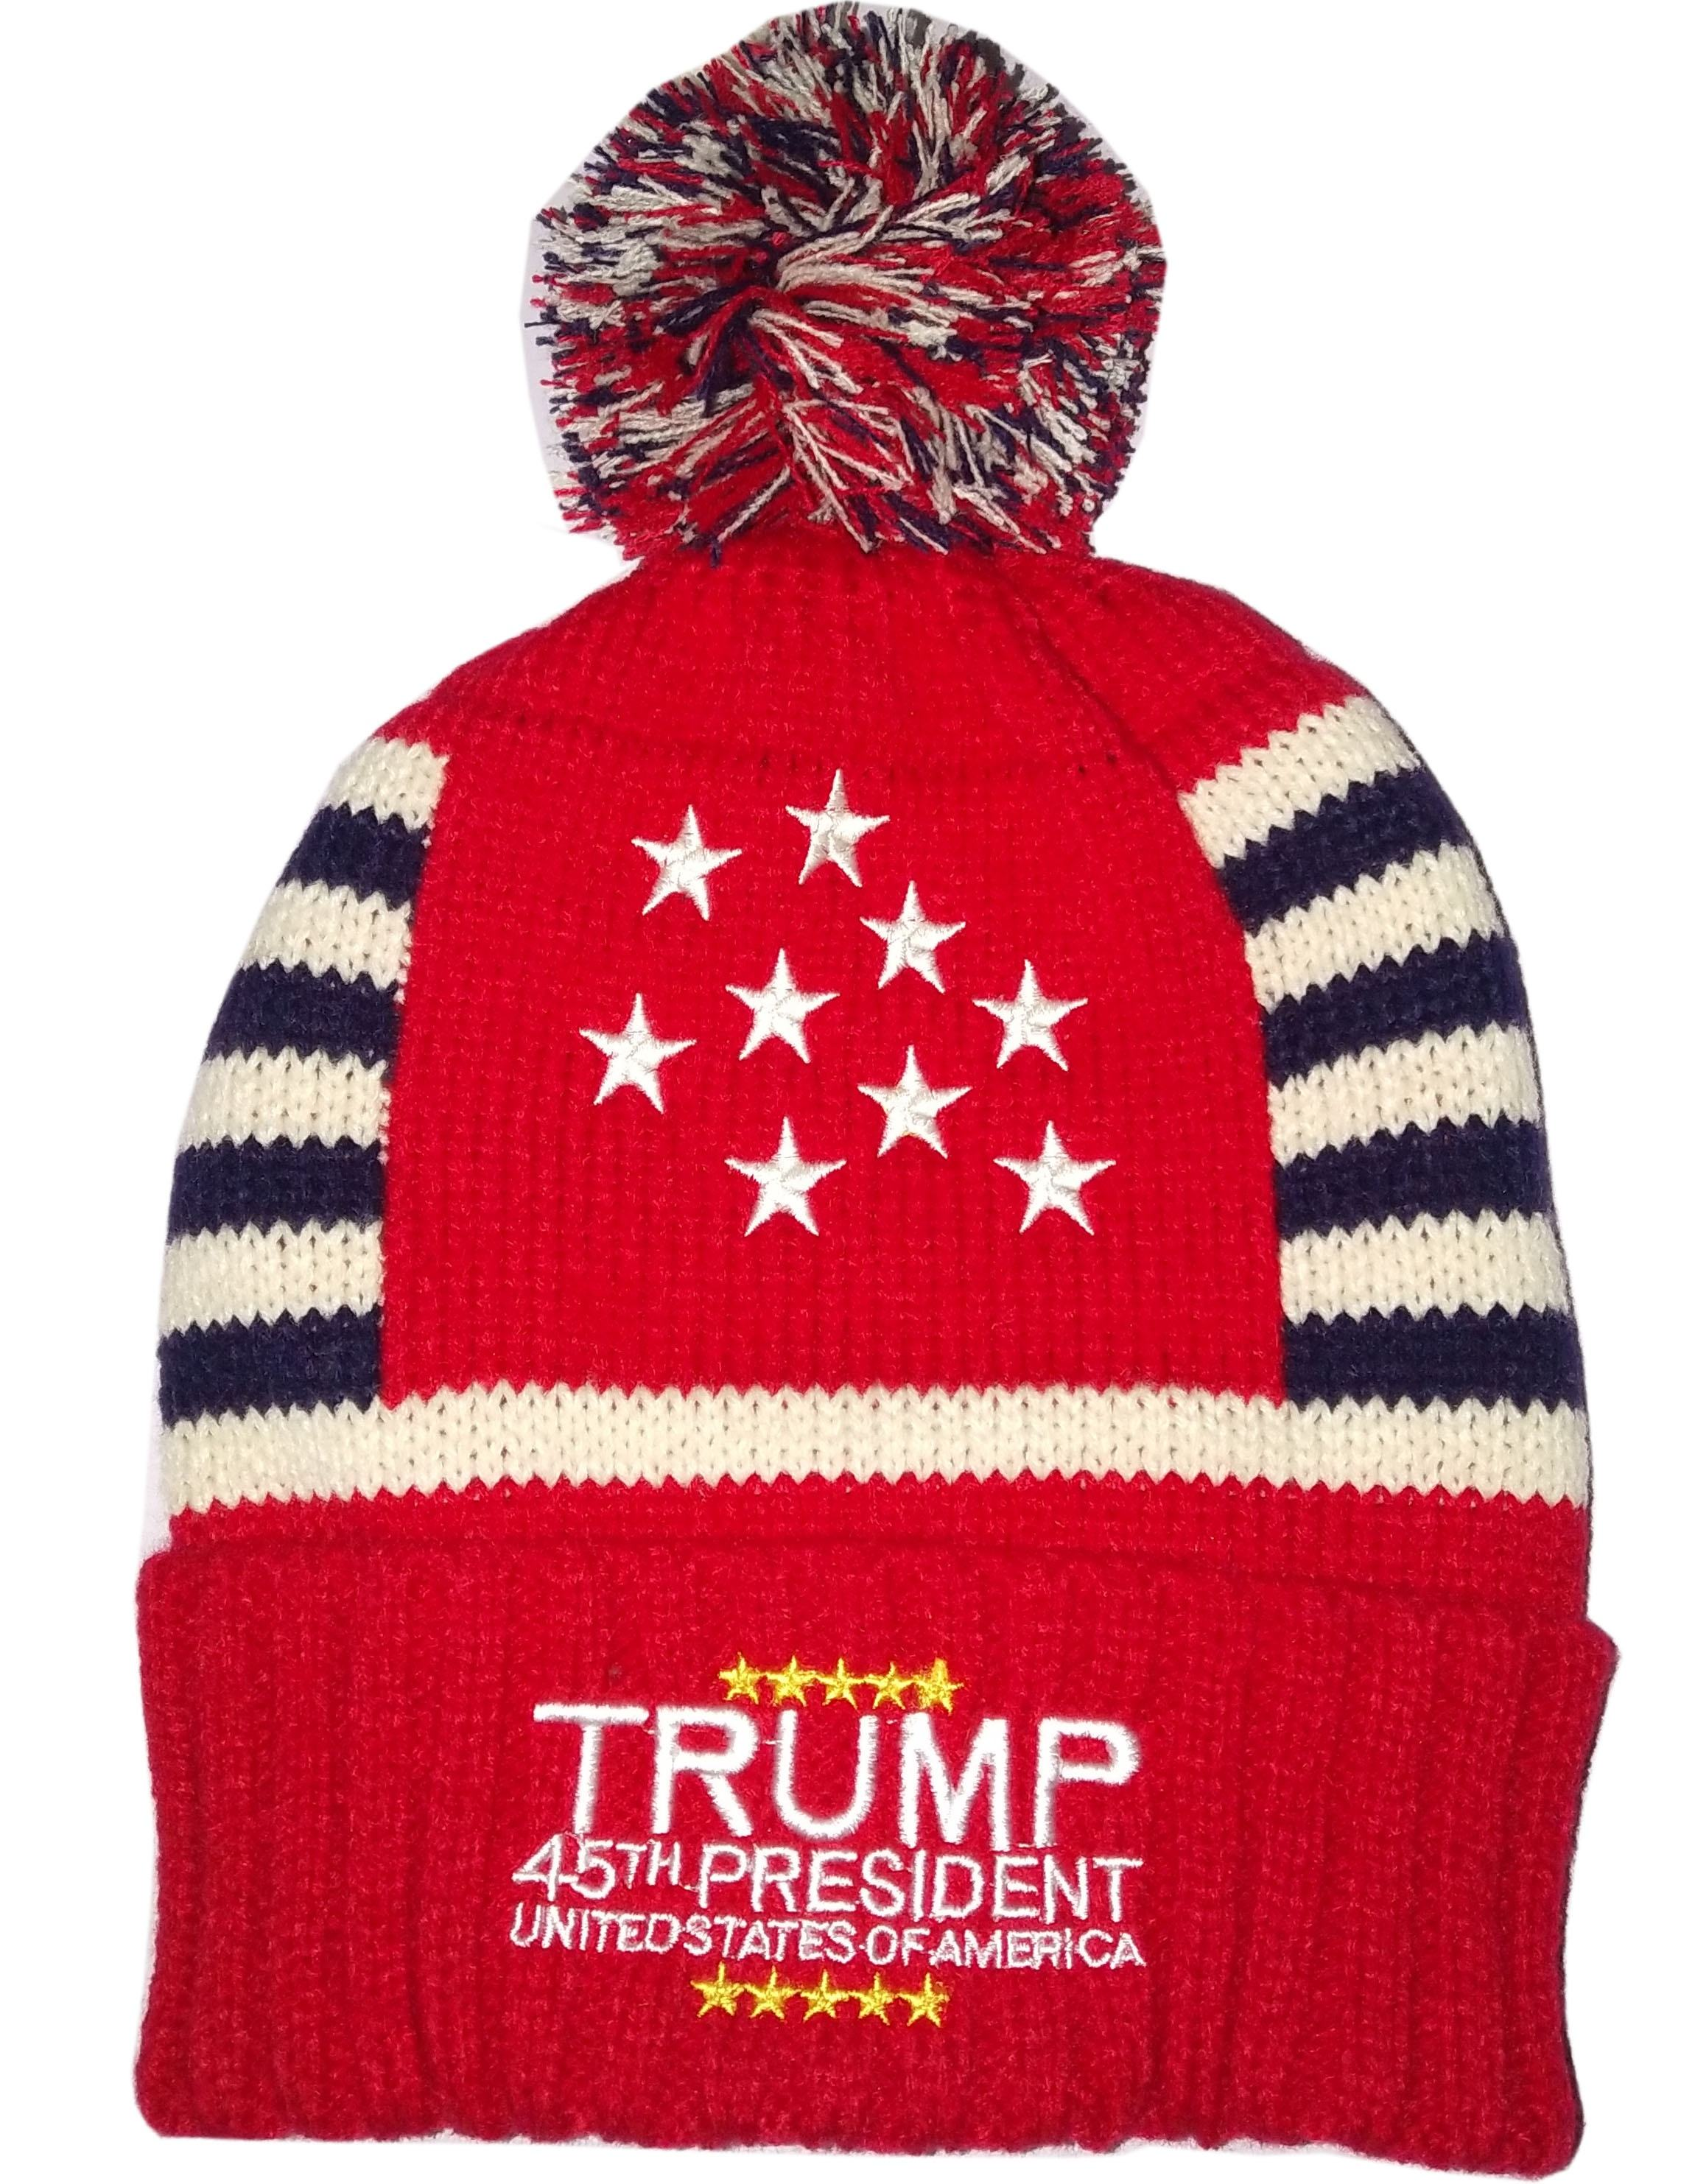 Unisex Men Women Jacquard Embroidery American Flag Cable Knit Winter Pom Trump 45th President Beanie Trump 2020 hat